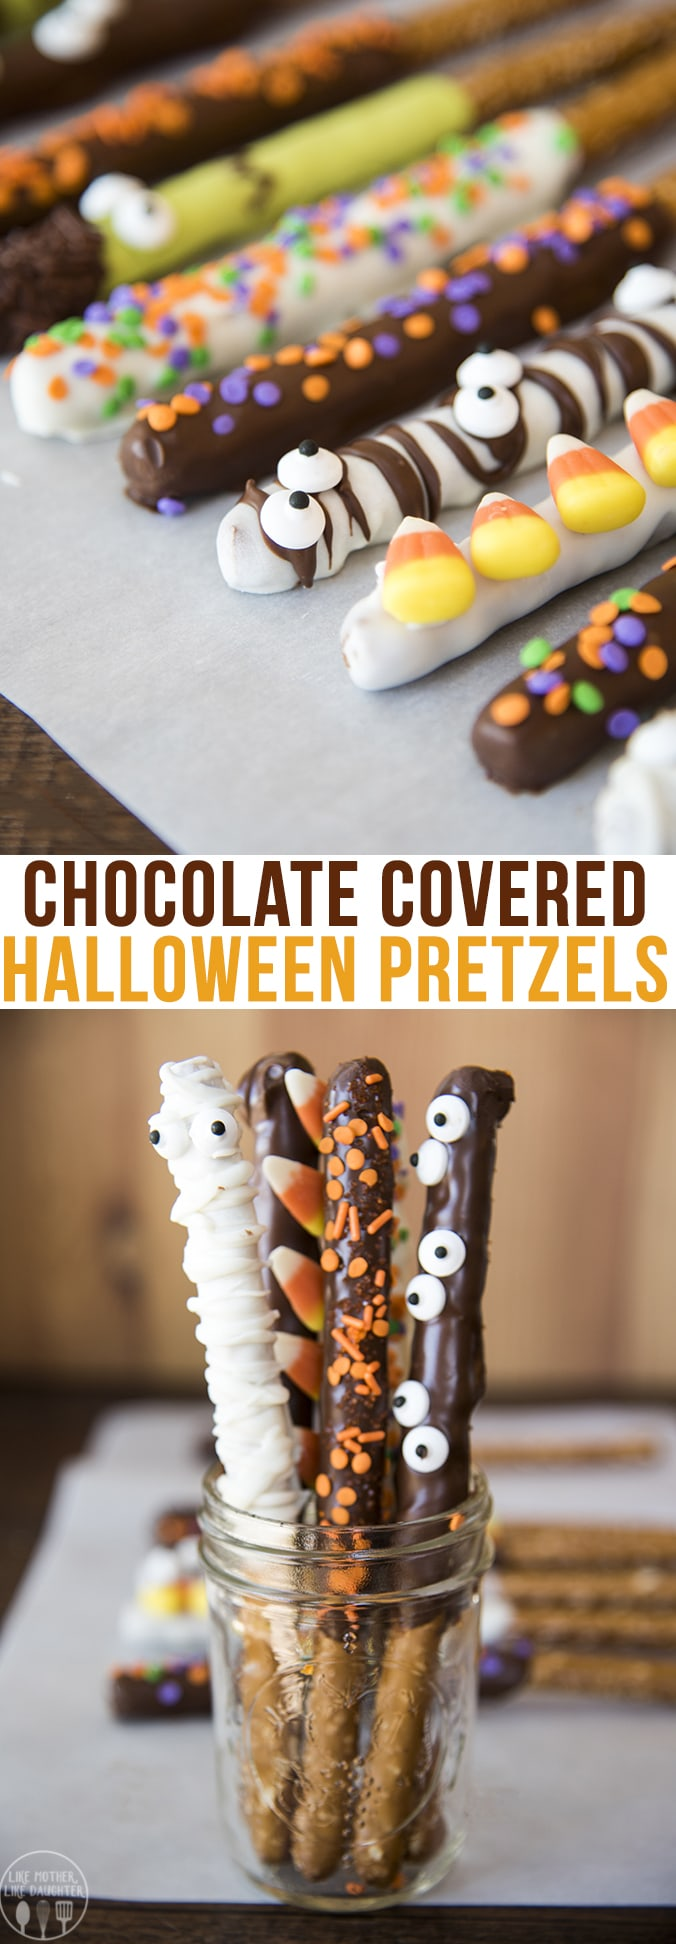 Halloween pretzels are fun and spooky chocolate covered pretzels, topped with sprinkles, candy corn, candy eyes and more to make them a perfect treat for Halloween time!